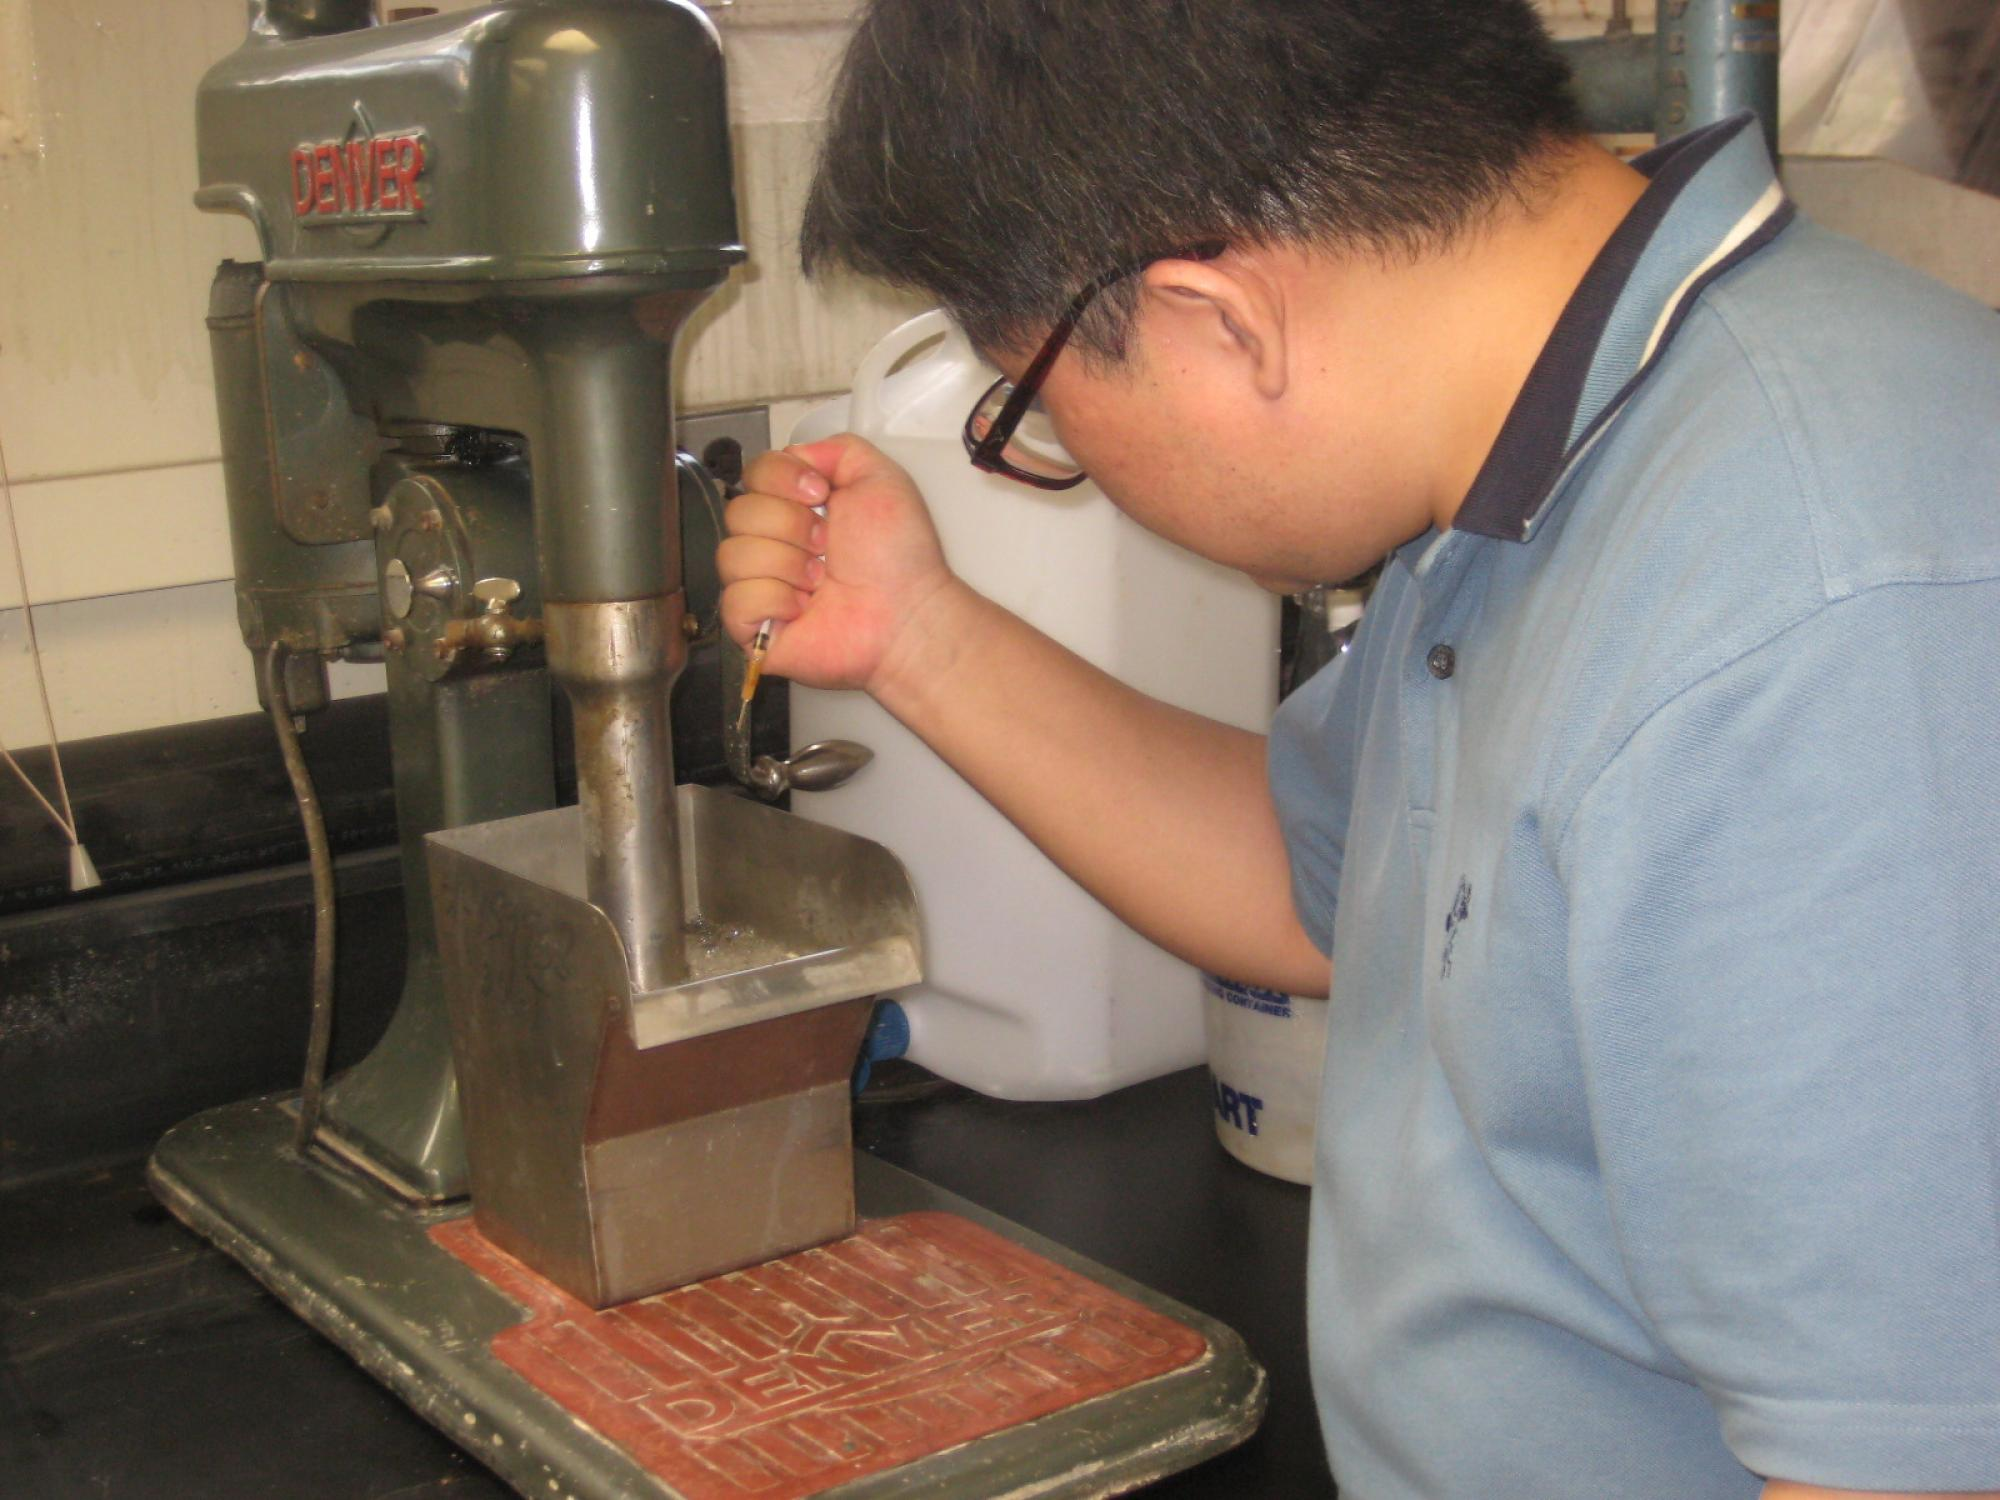 Jinhong Zhang, assistant professor of mining and geological engineering, injects just a few drops of chemical into a copper collection tank to create a layer of fine bubbles. The process brings copper particles to the surface for collection.